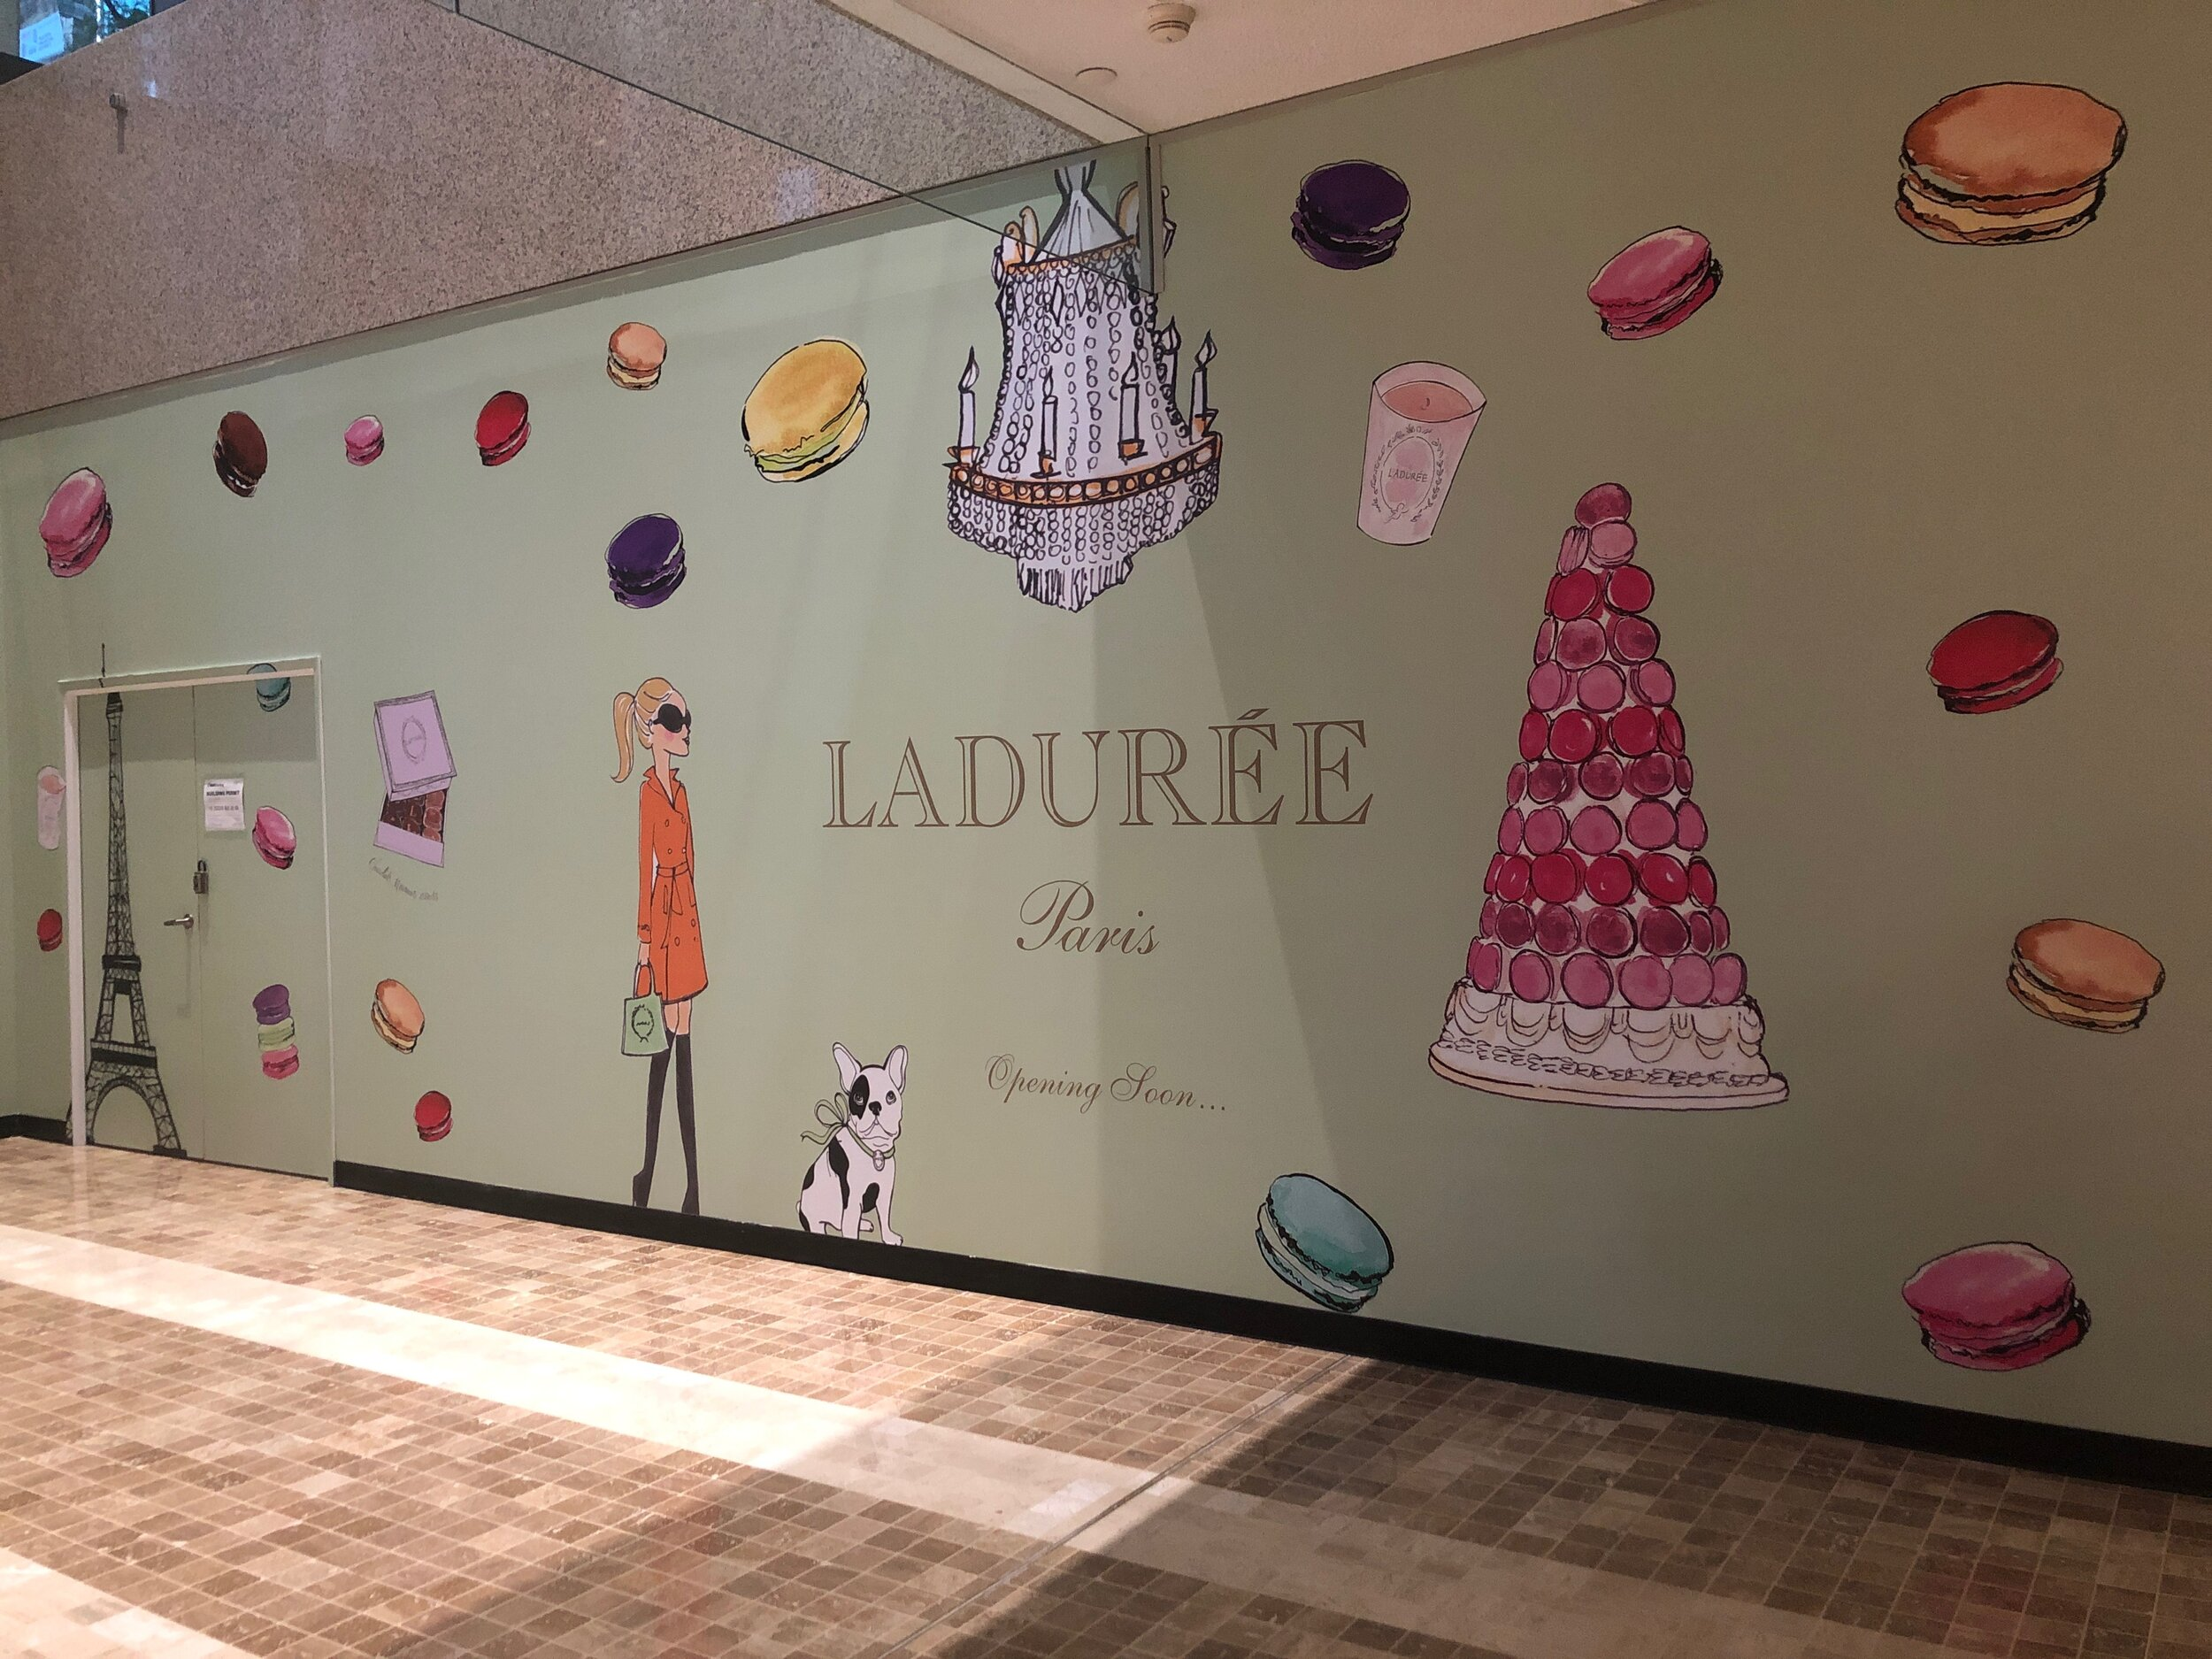 Construction hoarding at the Exchange Tower in Toronto's Financial District. Photo: Ladurée